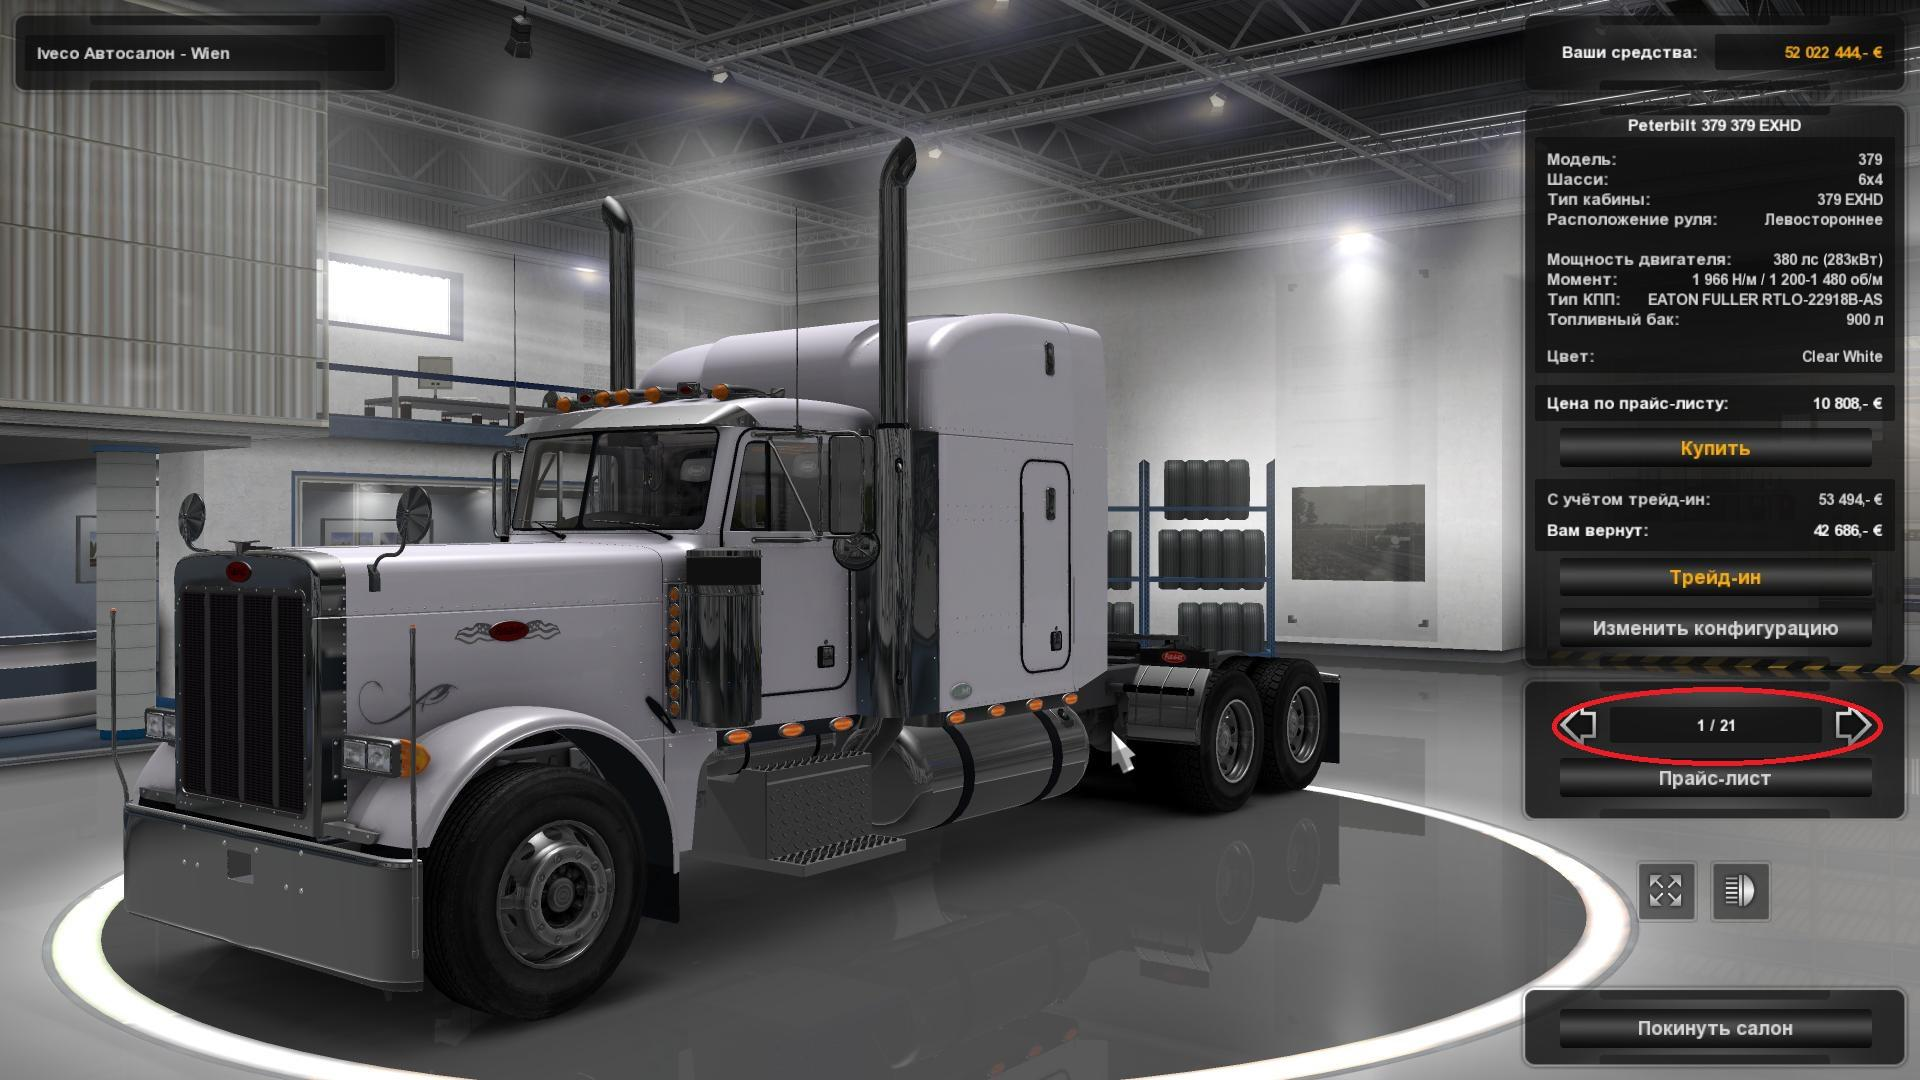 HOW O CREATE NEW SLOTS IN ETS2